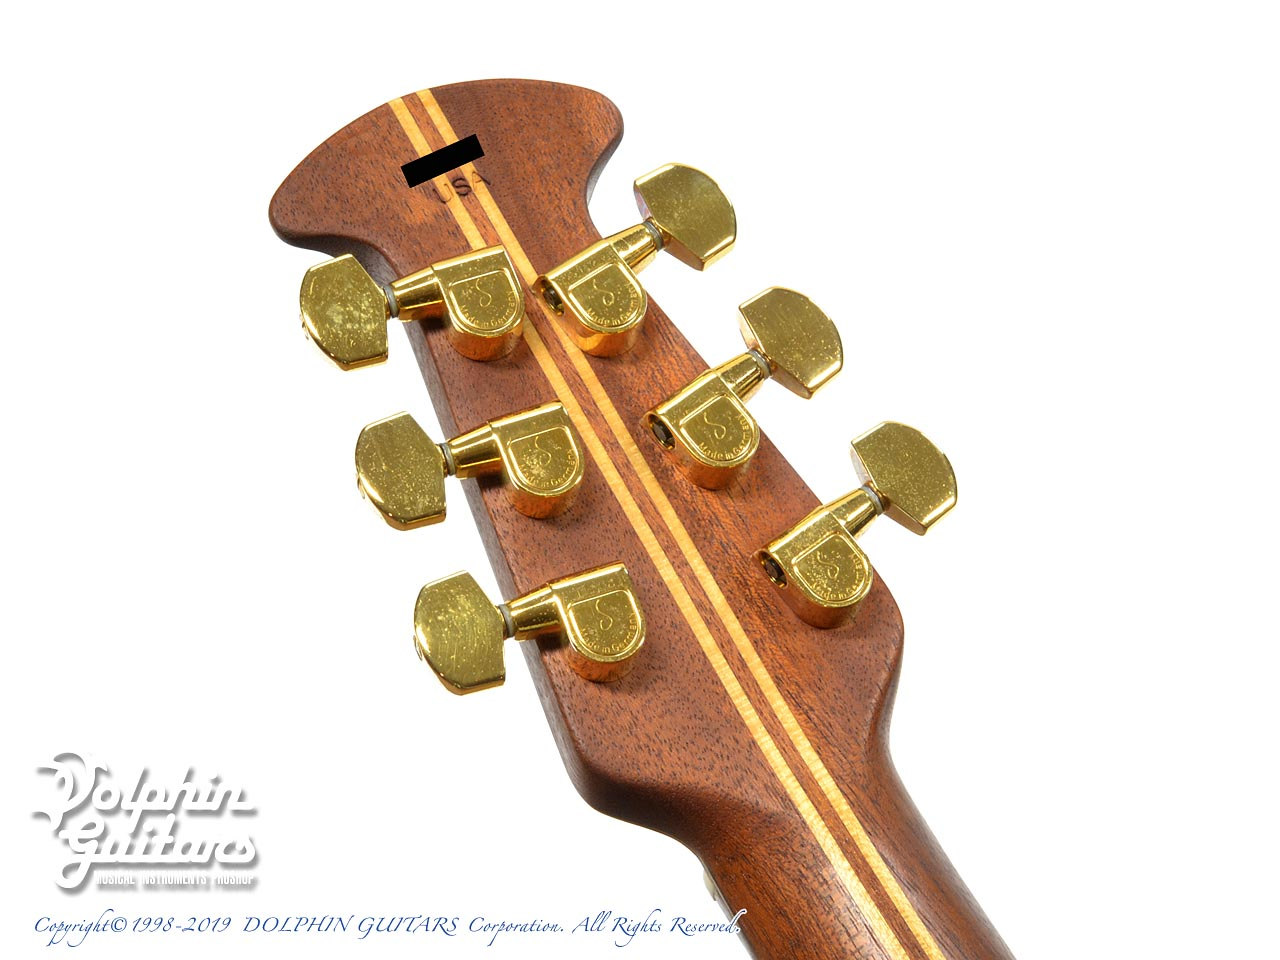 OVATION: Adamas II 1881-NB5 (8)